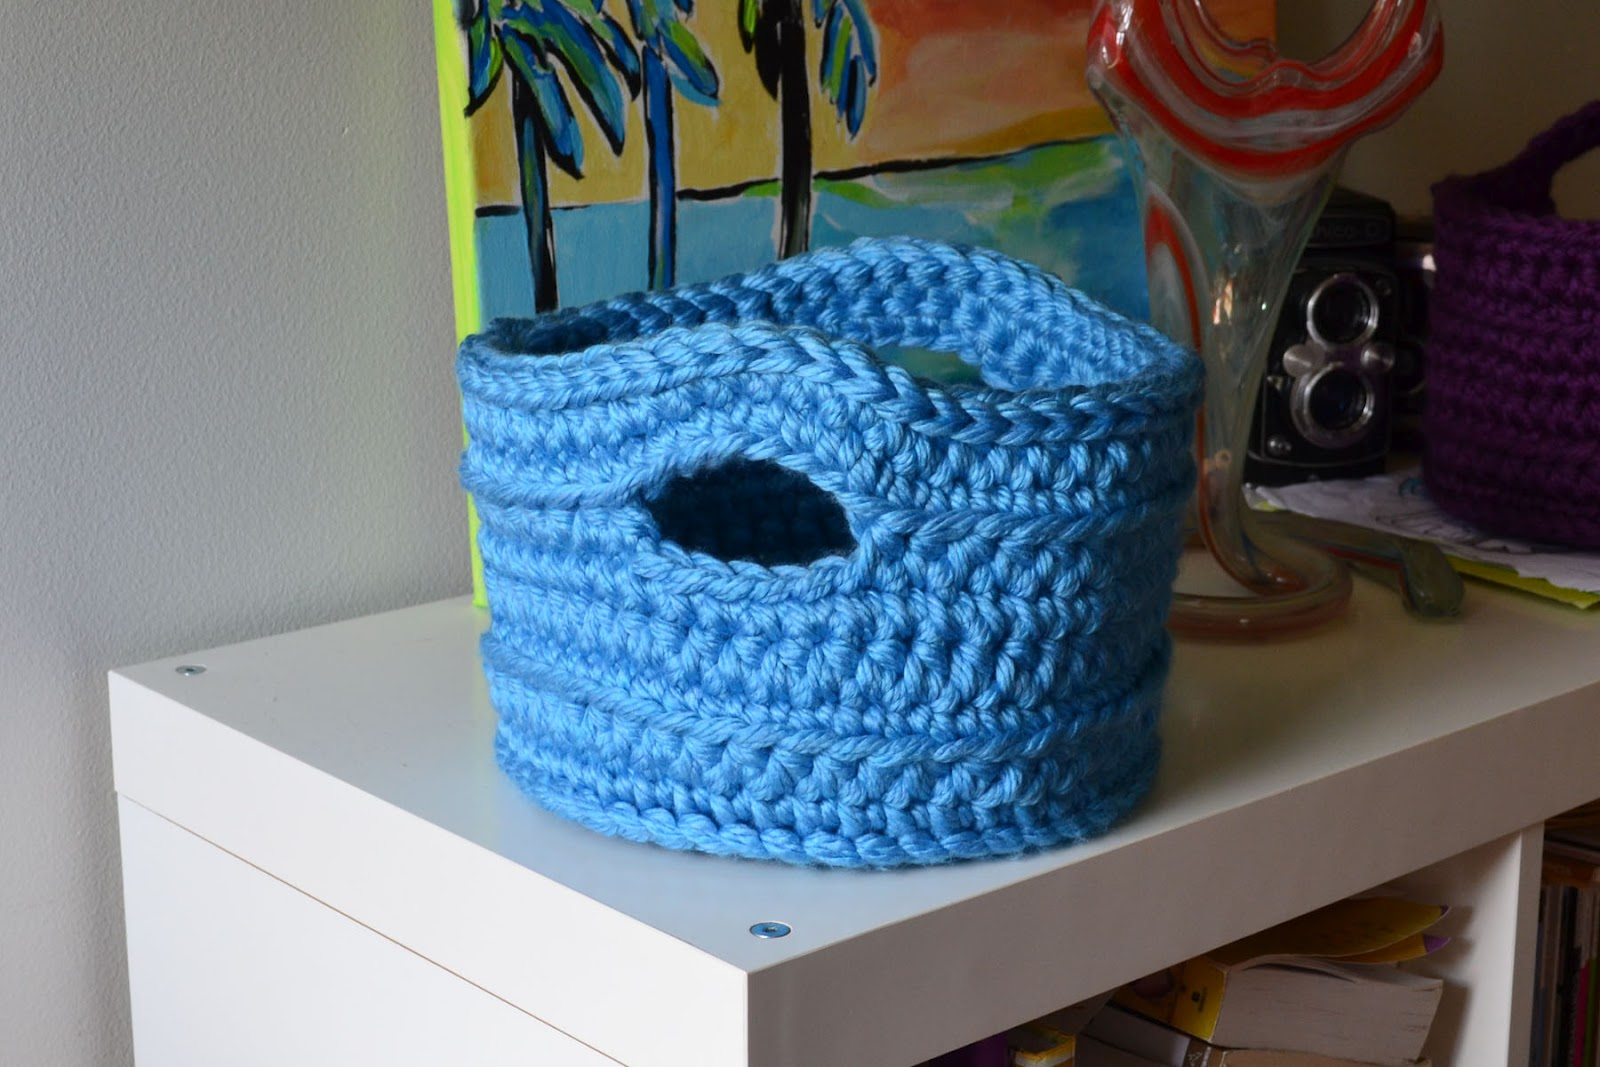 Another Version of the Chunky Basket